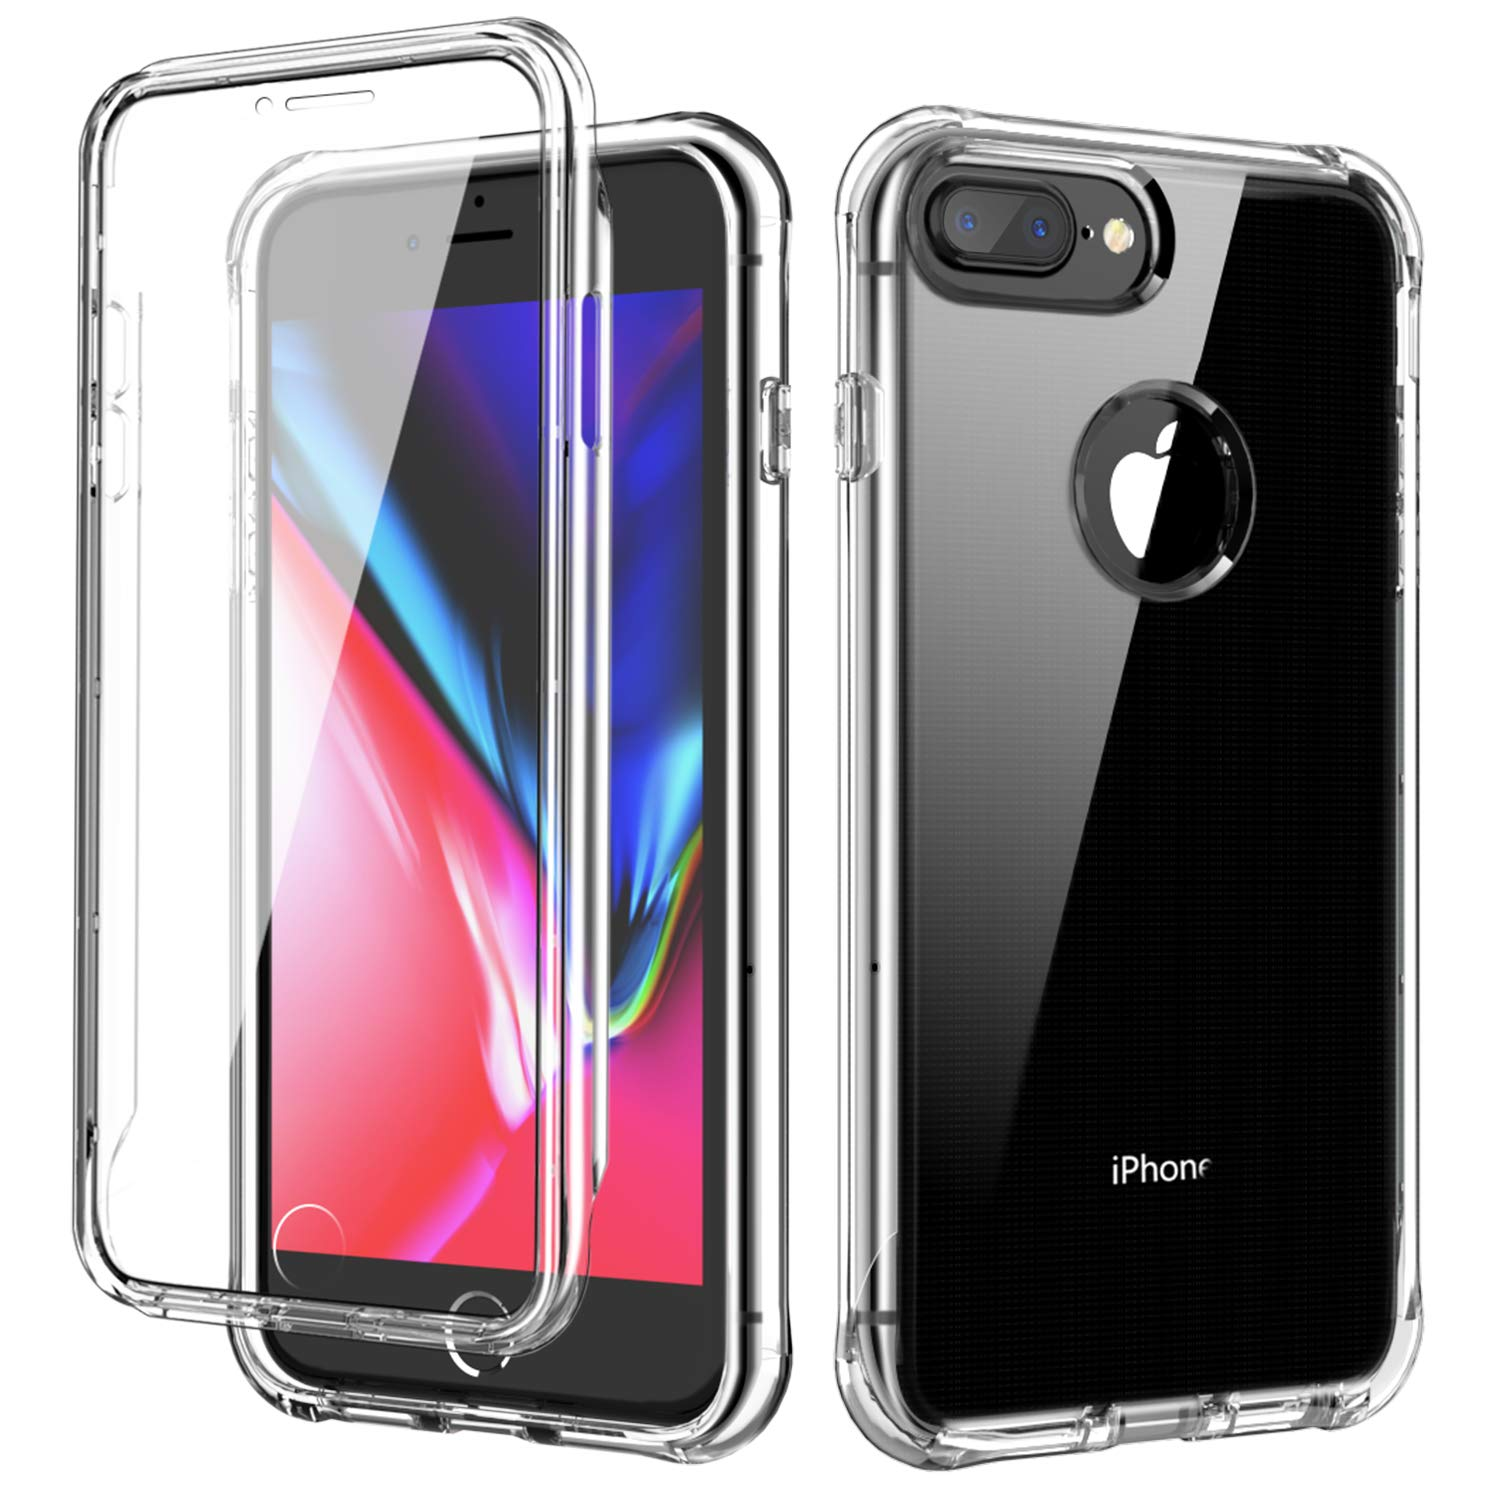 SKYLMW iPhone 6 Plus Case,iPhone 6S Plus Case,iPhone 7 Plus/8 Plus Case,[Built in Screen Protector] Full Body Shockproof Dual Layer Protective Hard Plastic & Soft TPU Phone Cover,Clear by SKYLMW